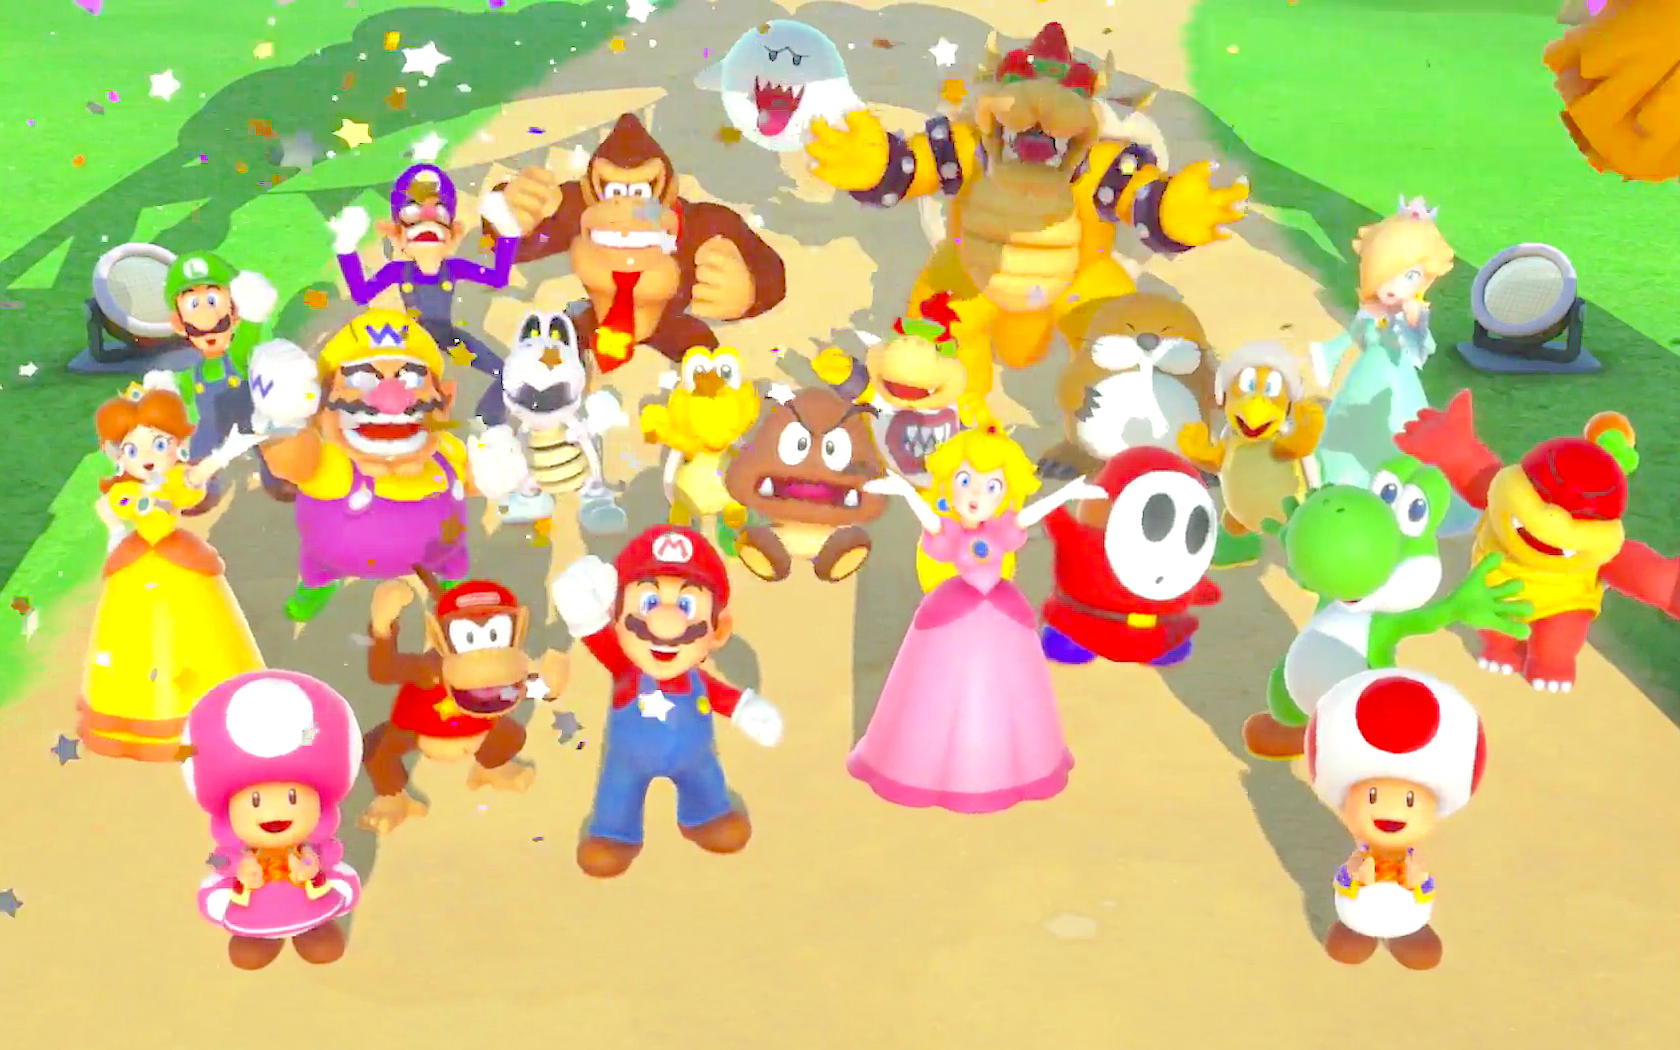 Super Mario Theme Park It May Be Coming To Universal Studios Orlando